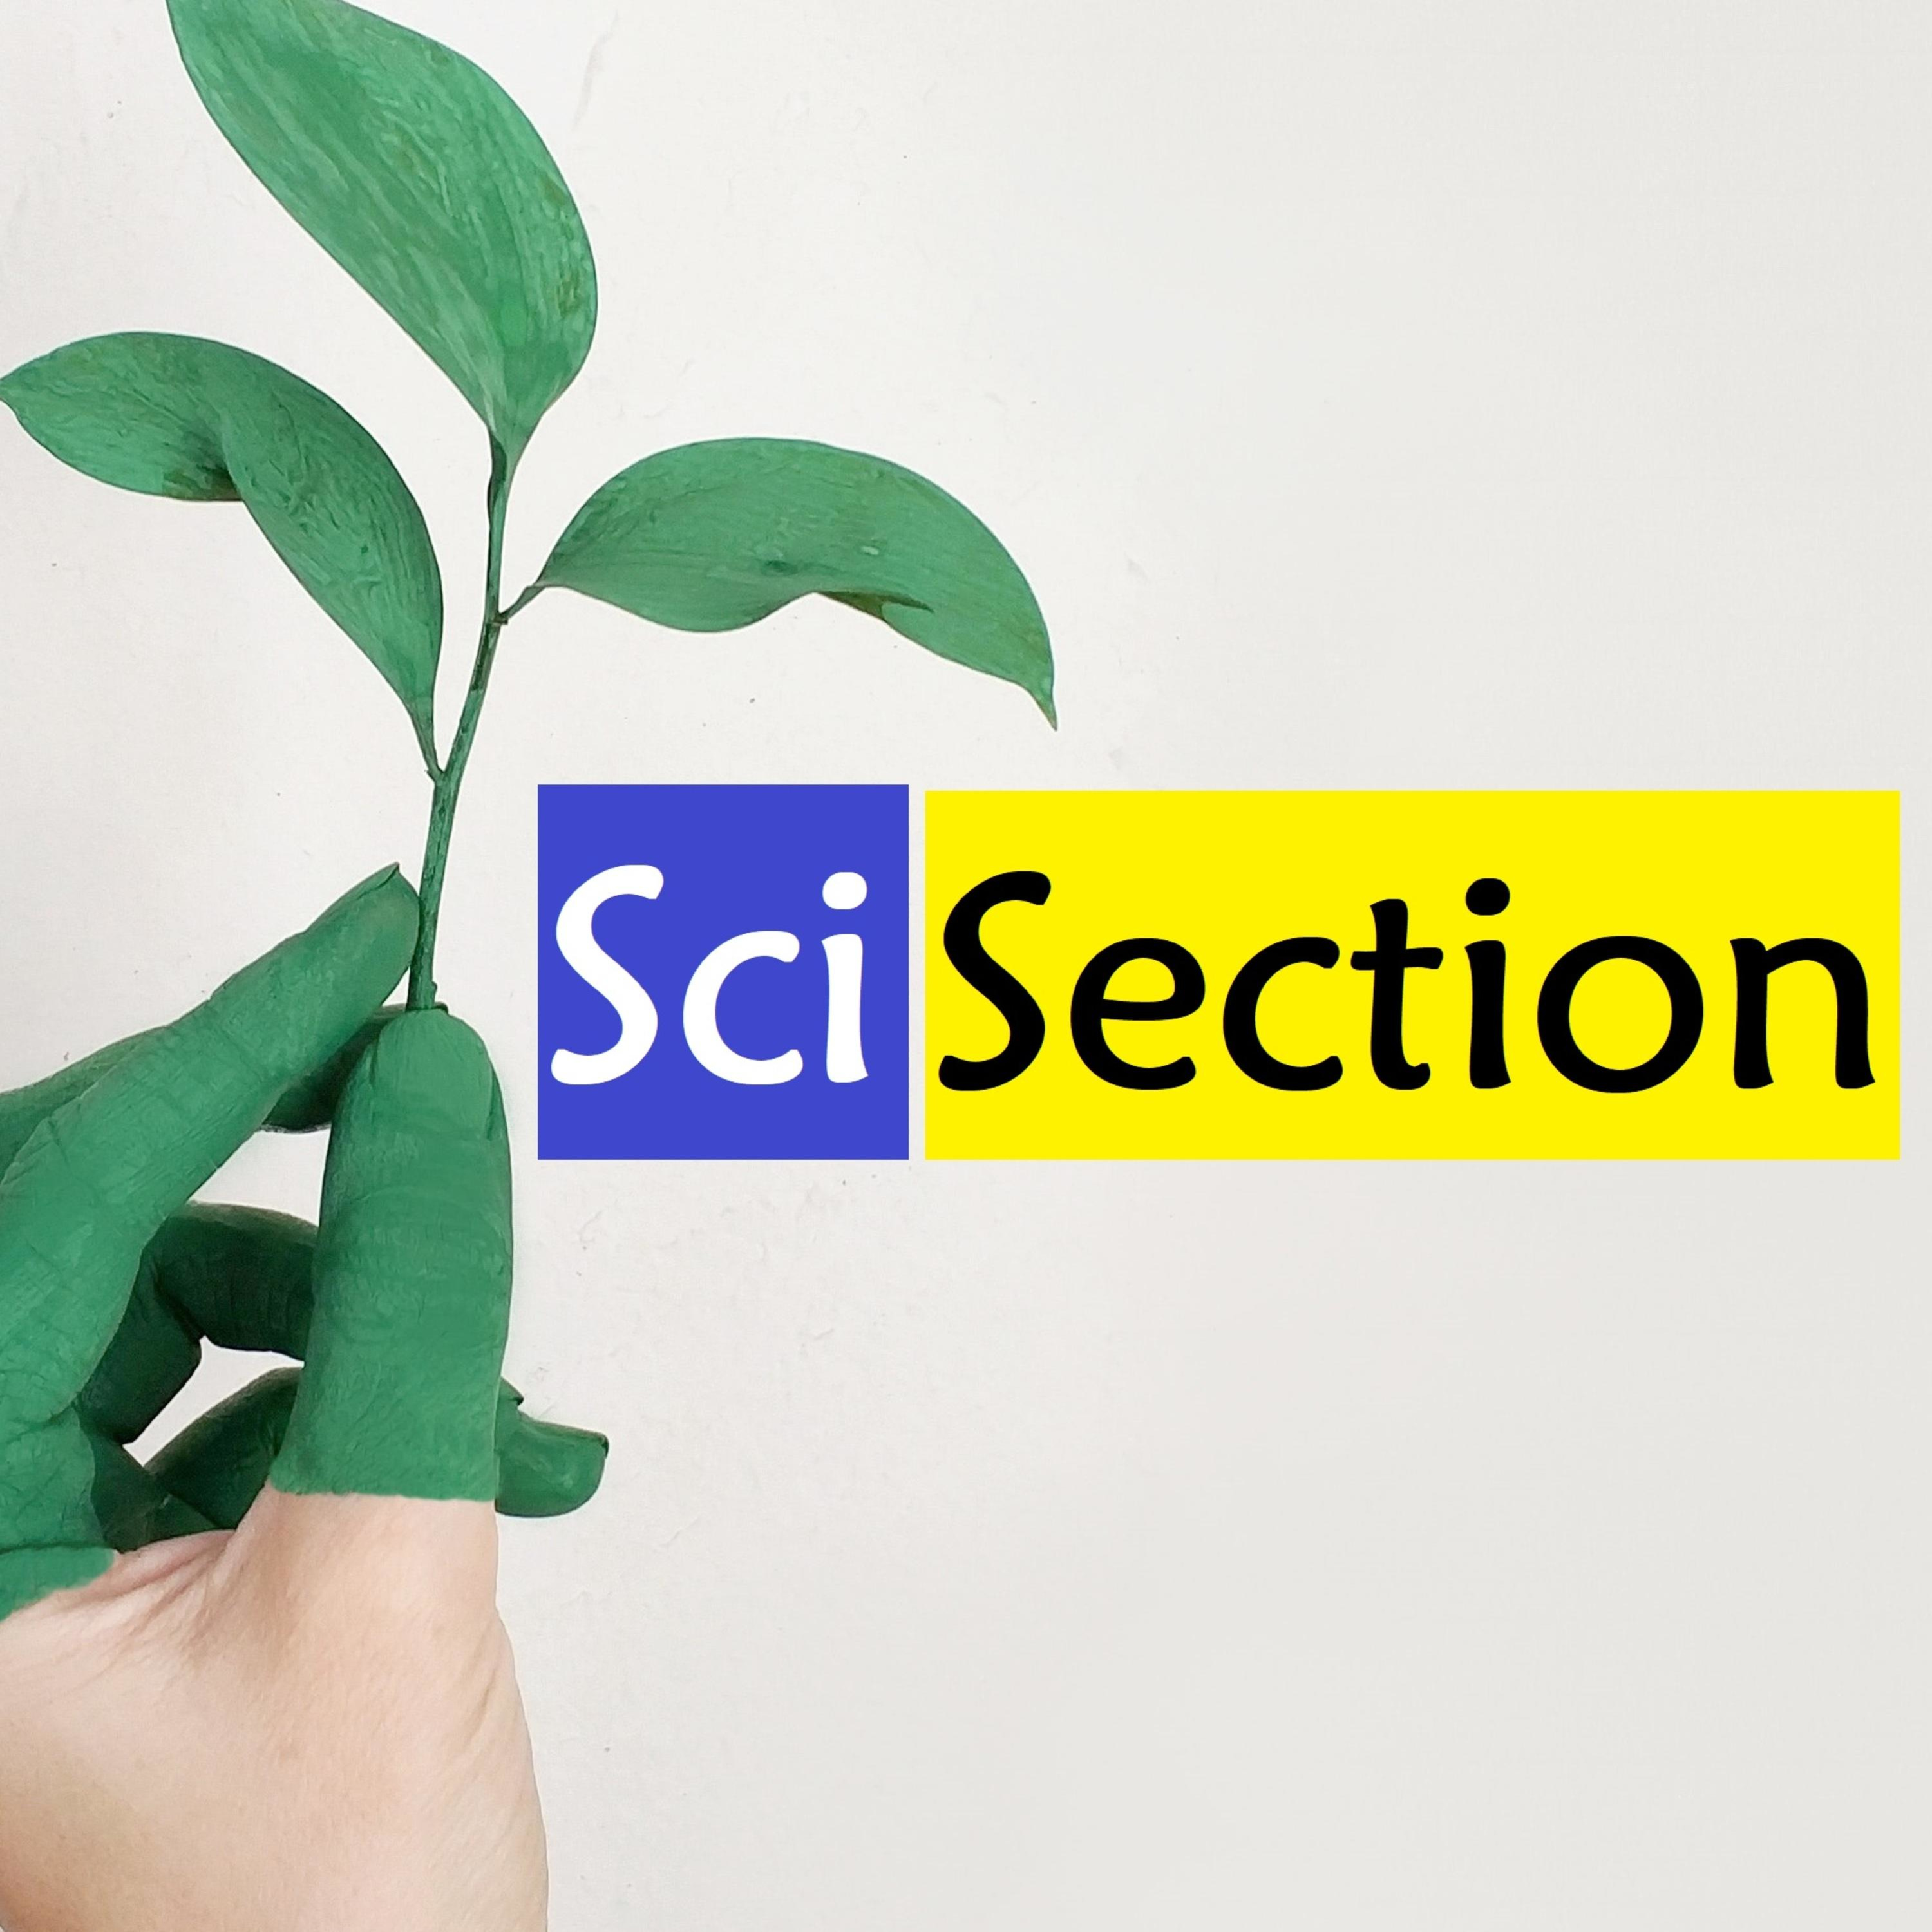 Sci-Section